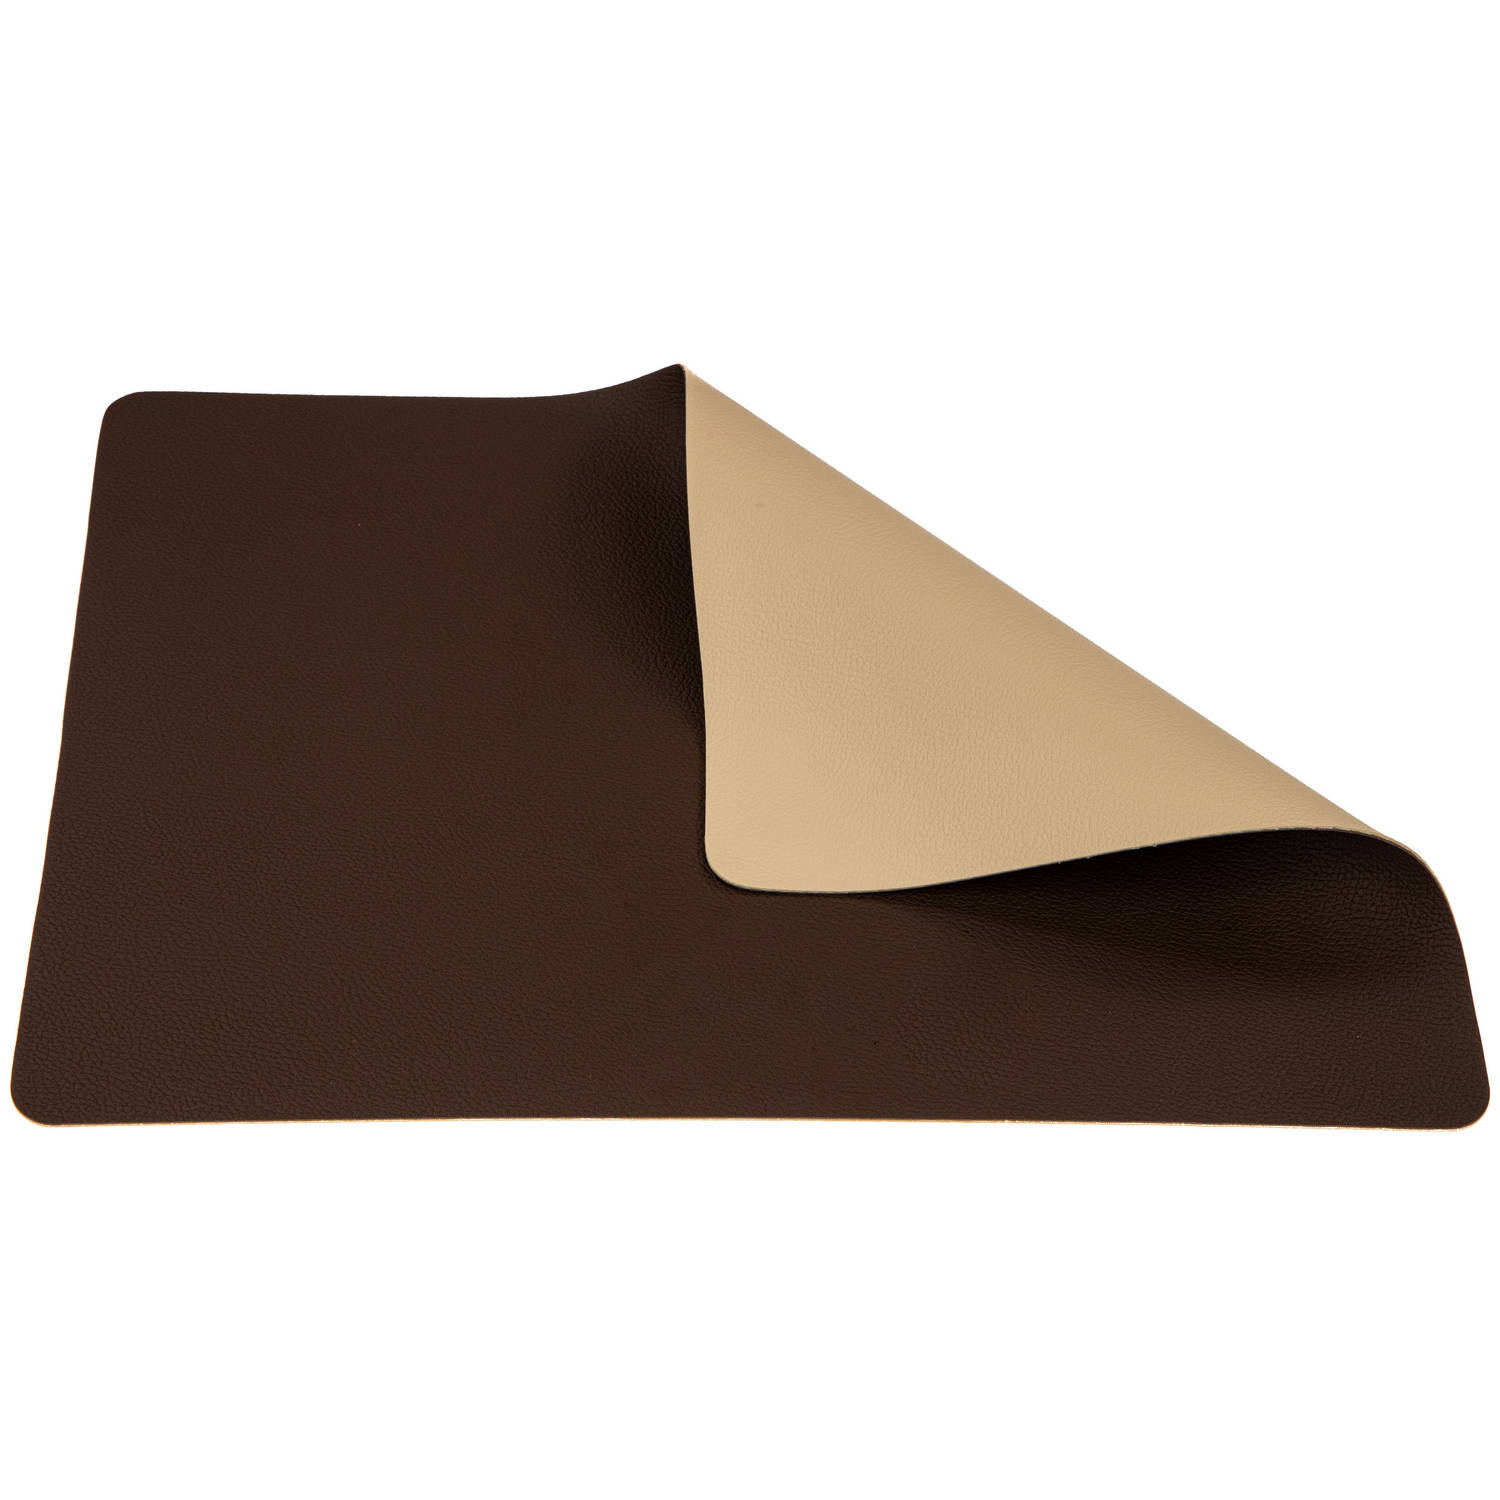 Korting Jay Hill Placemat Leer Bruin Zand 33 X 46 Cm